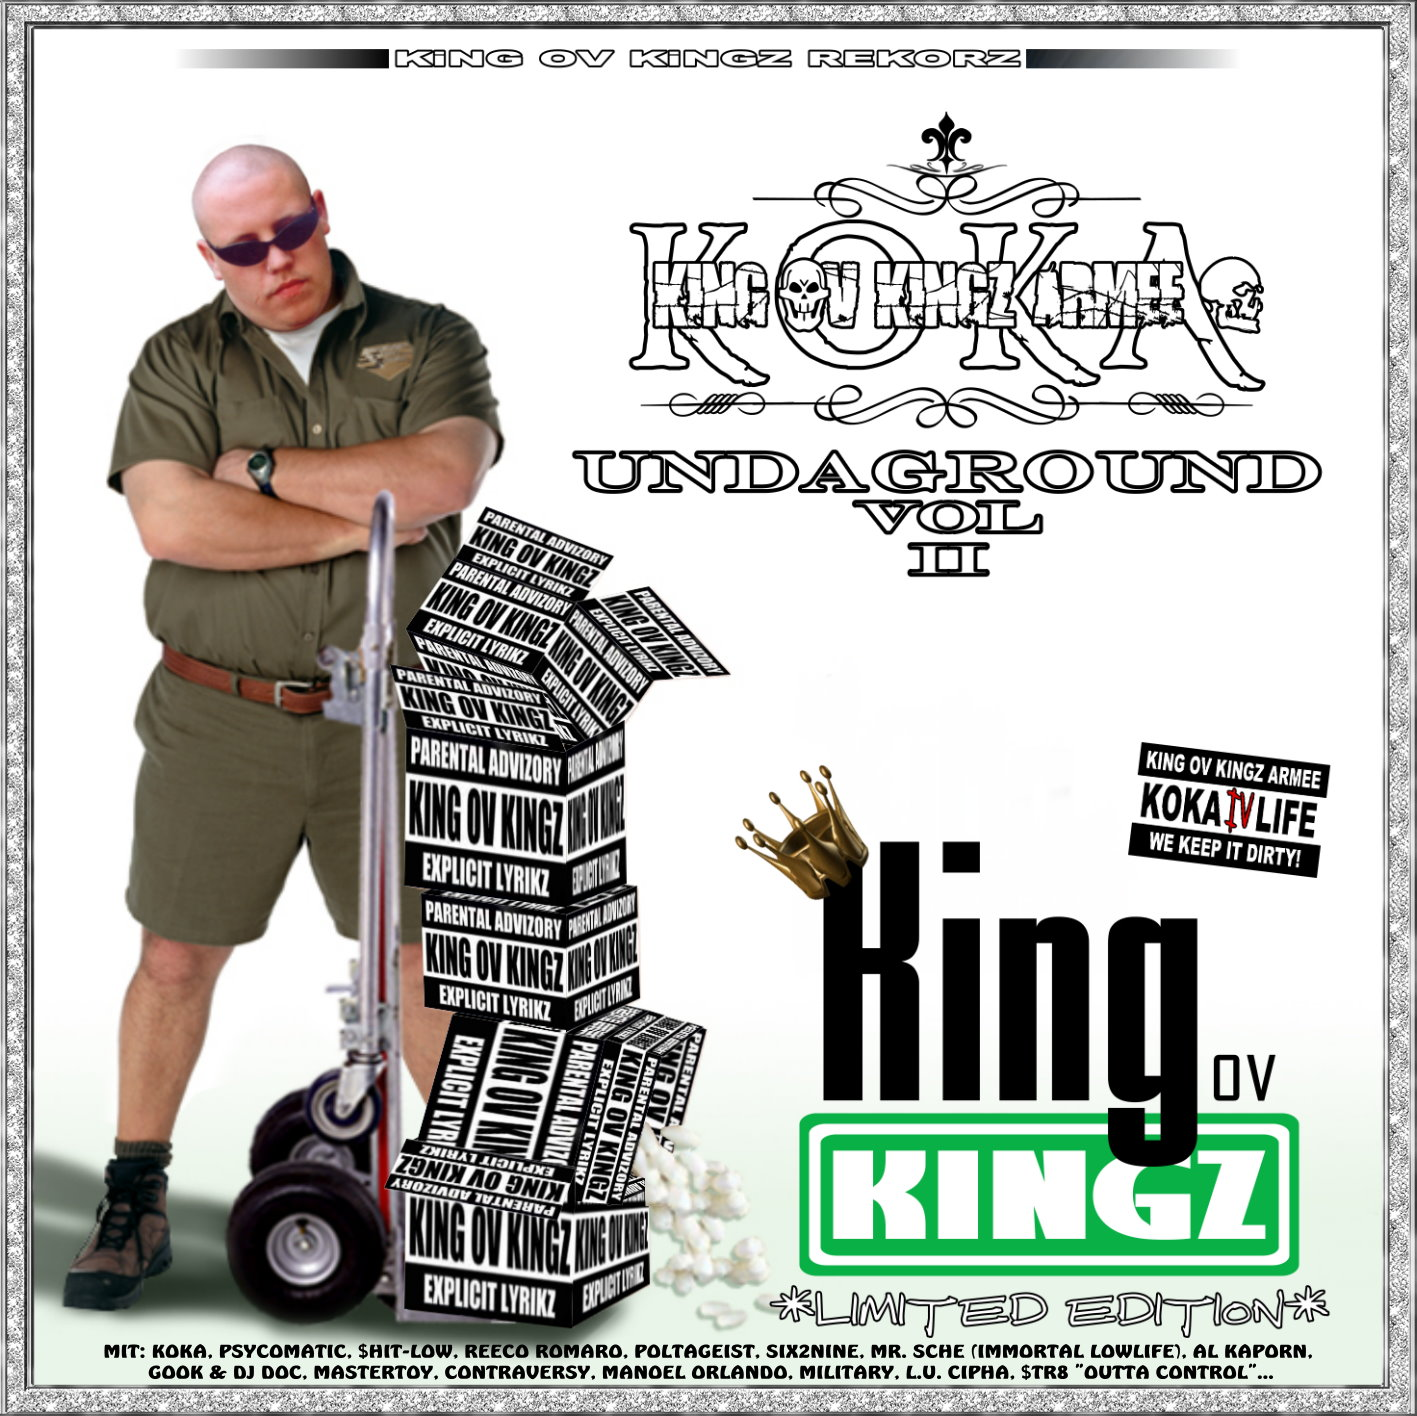 KOKA / KING OV KINGZ ARMEE - UNDAGROUND VOL. 2 (LIMITED EDITION) (RAP / HIP HOP)